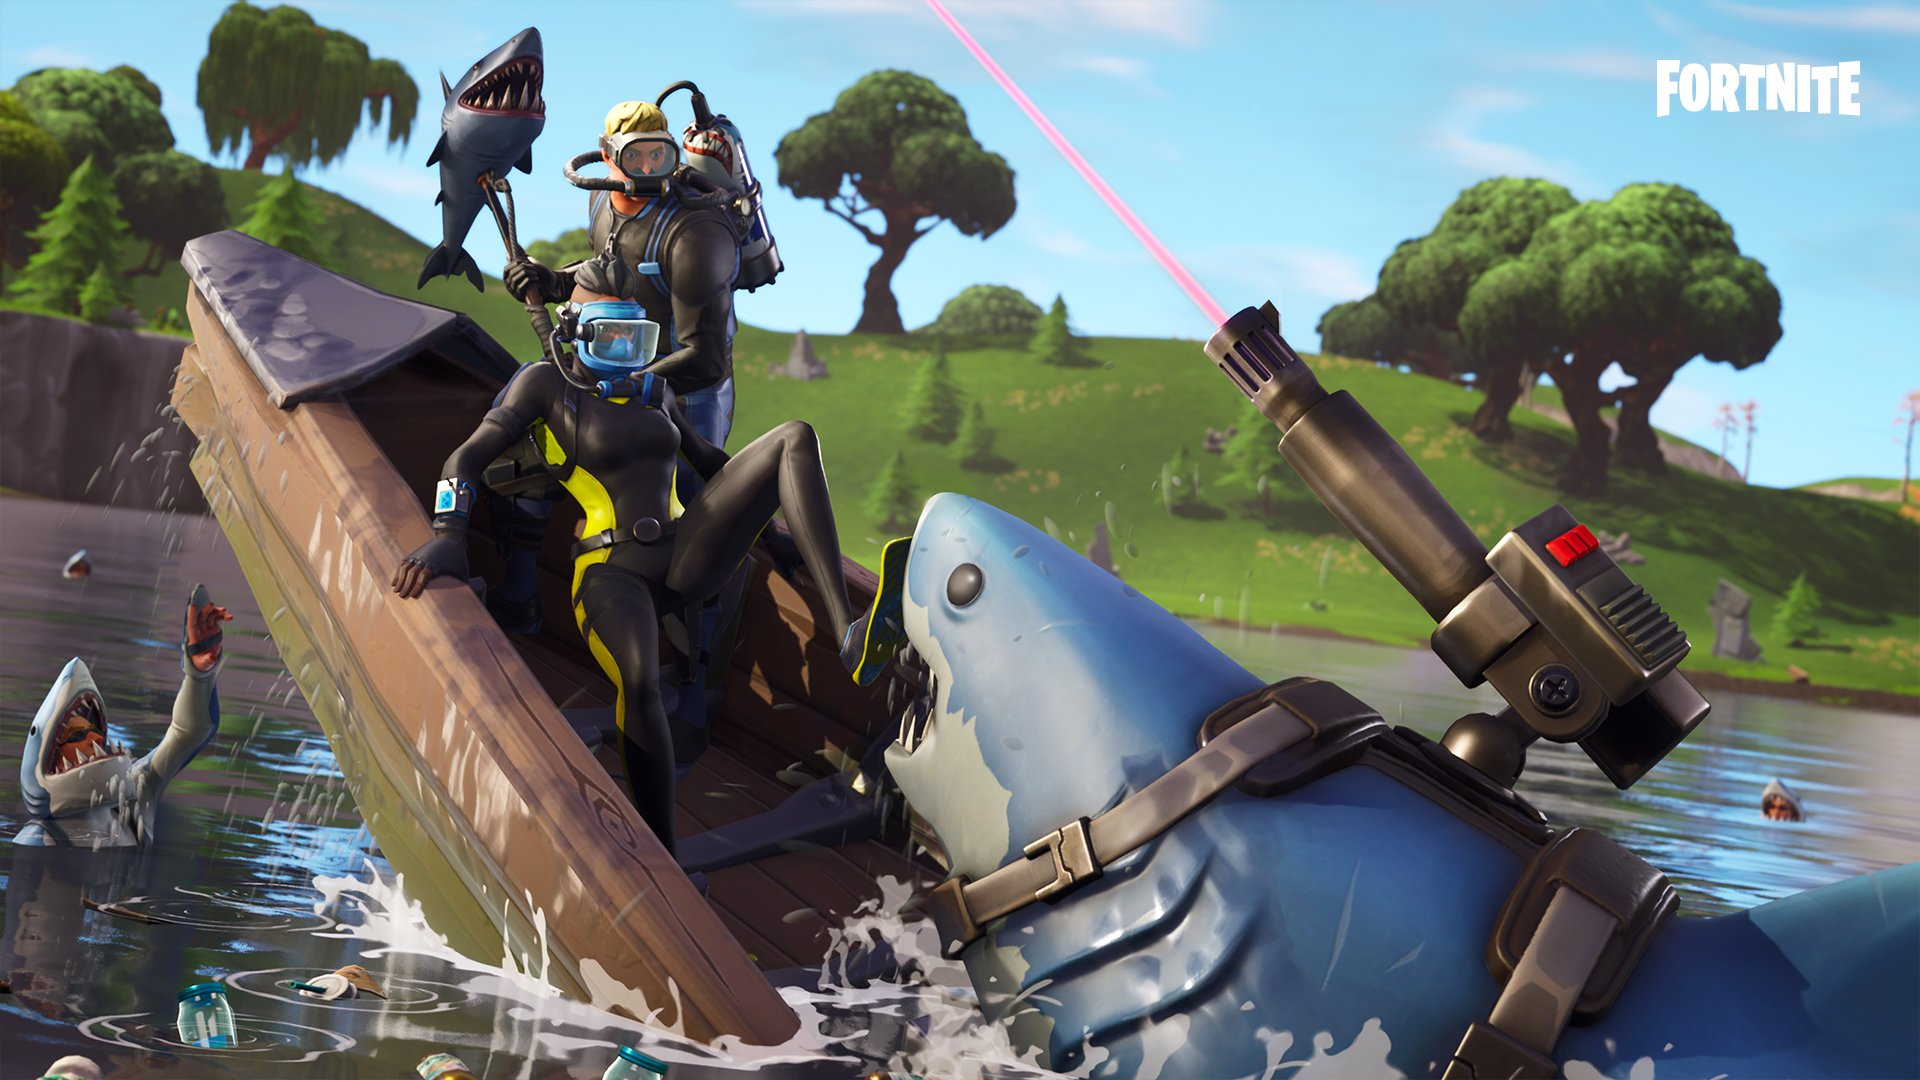 Fortnite on Android hits 15 million installs, no Google Play